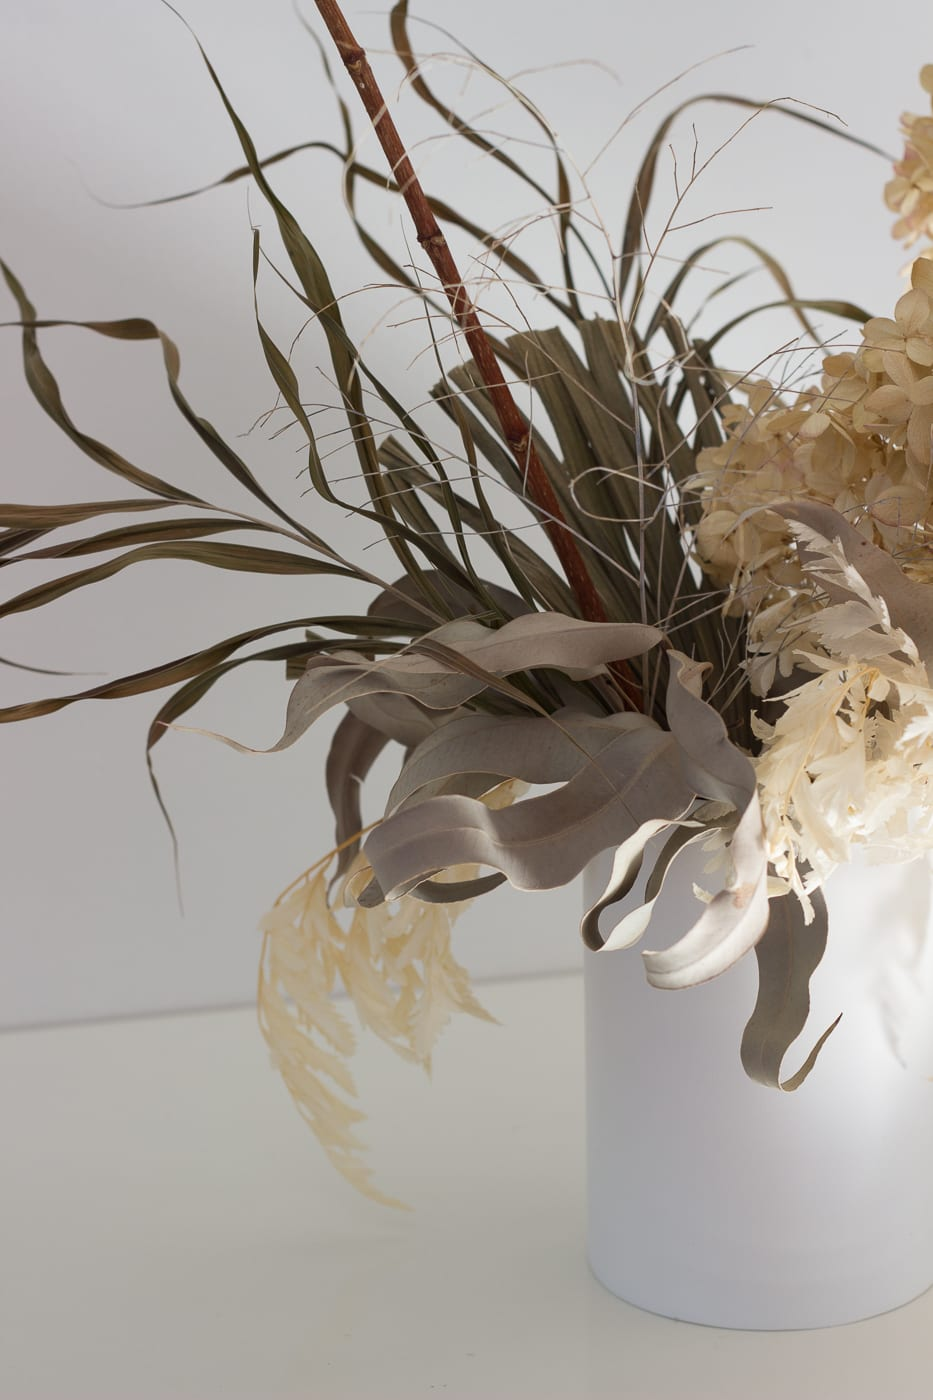 Natural colour medium arrangement in white vase from On My Hand Florals and Styling, Tauranga, Bay of Plenty.